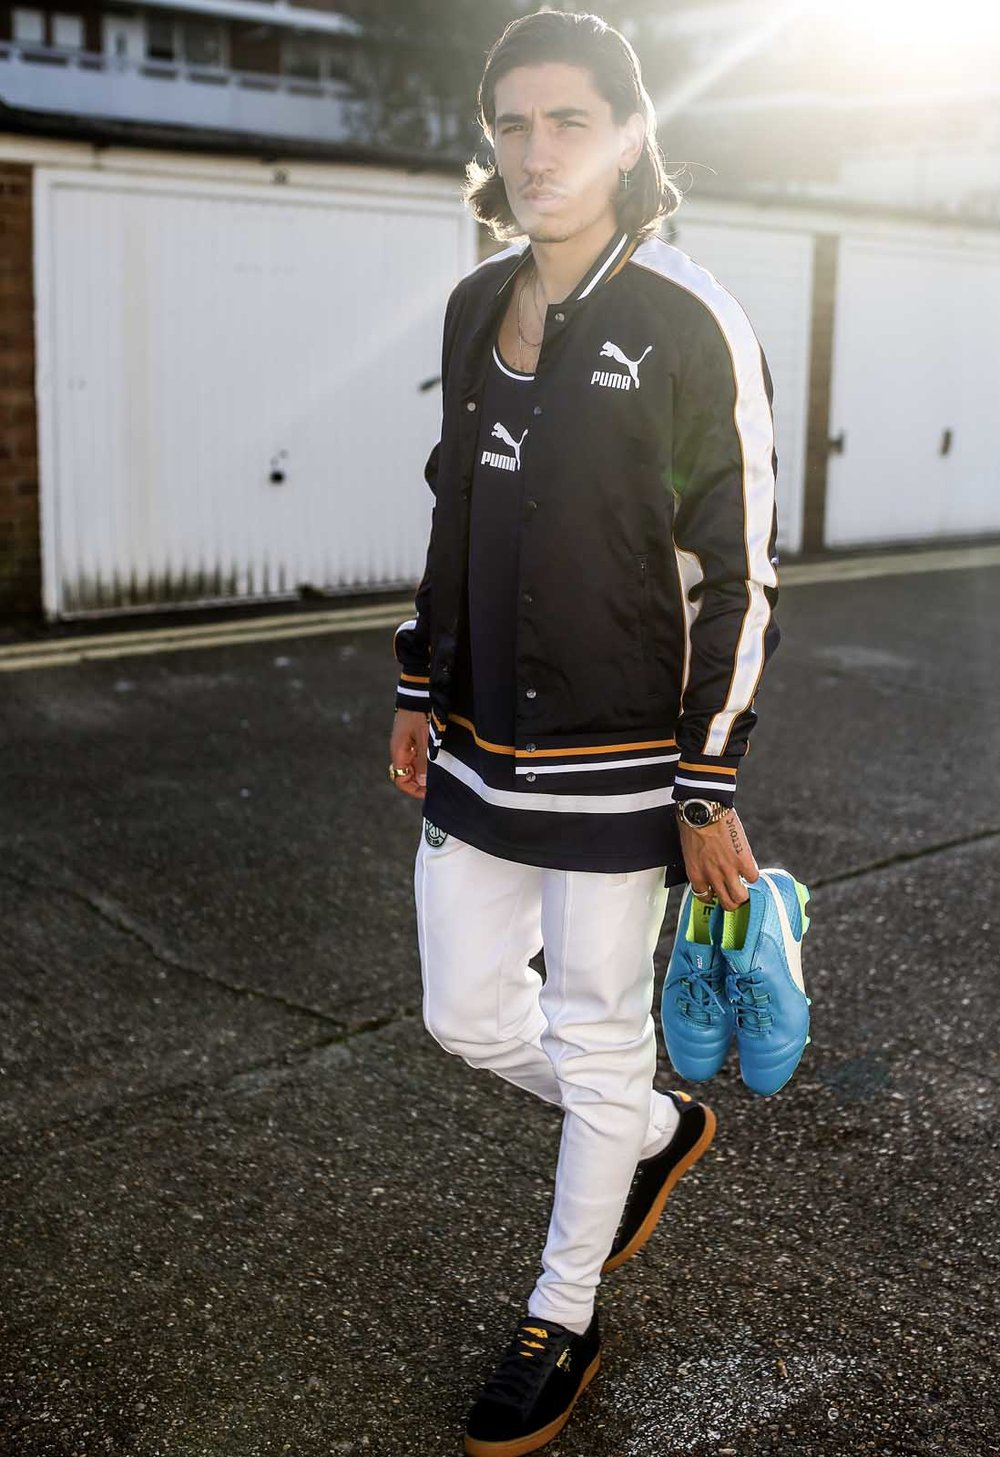 13-bellerin-one-lookbook-puma-min.jpg